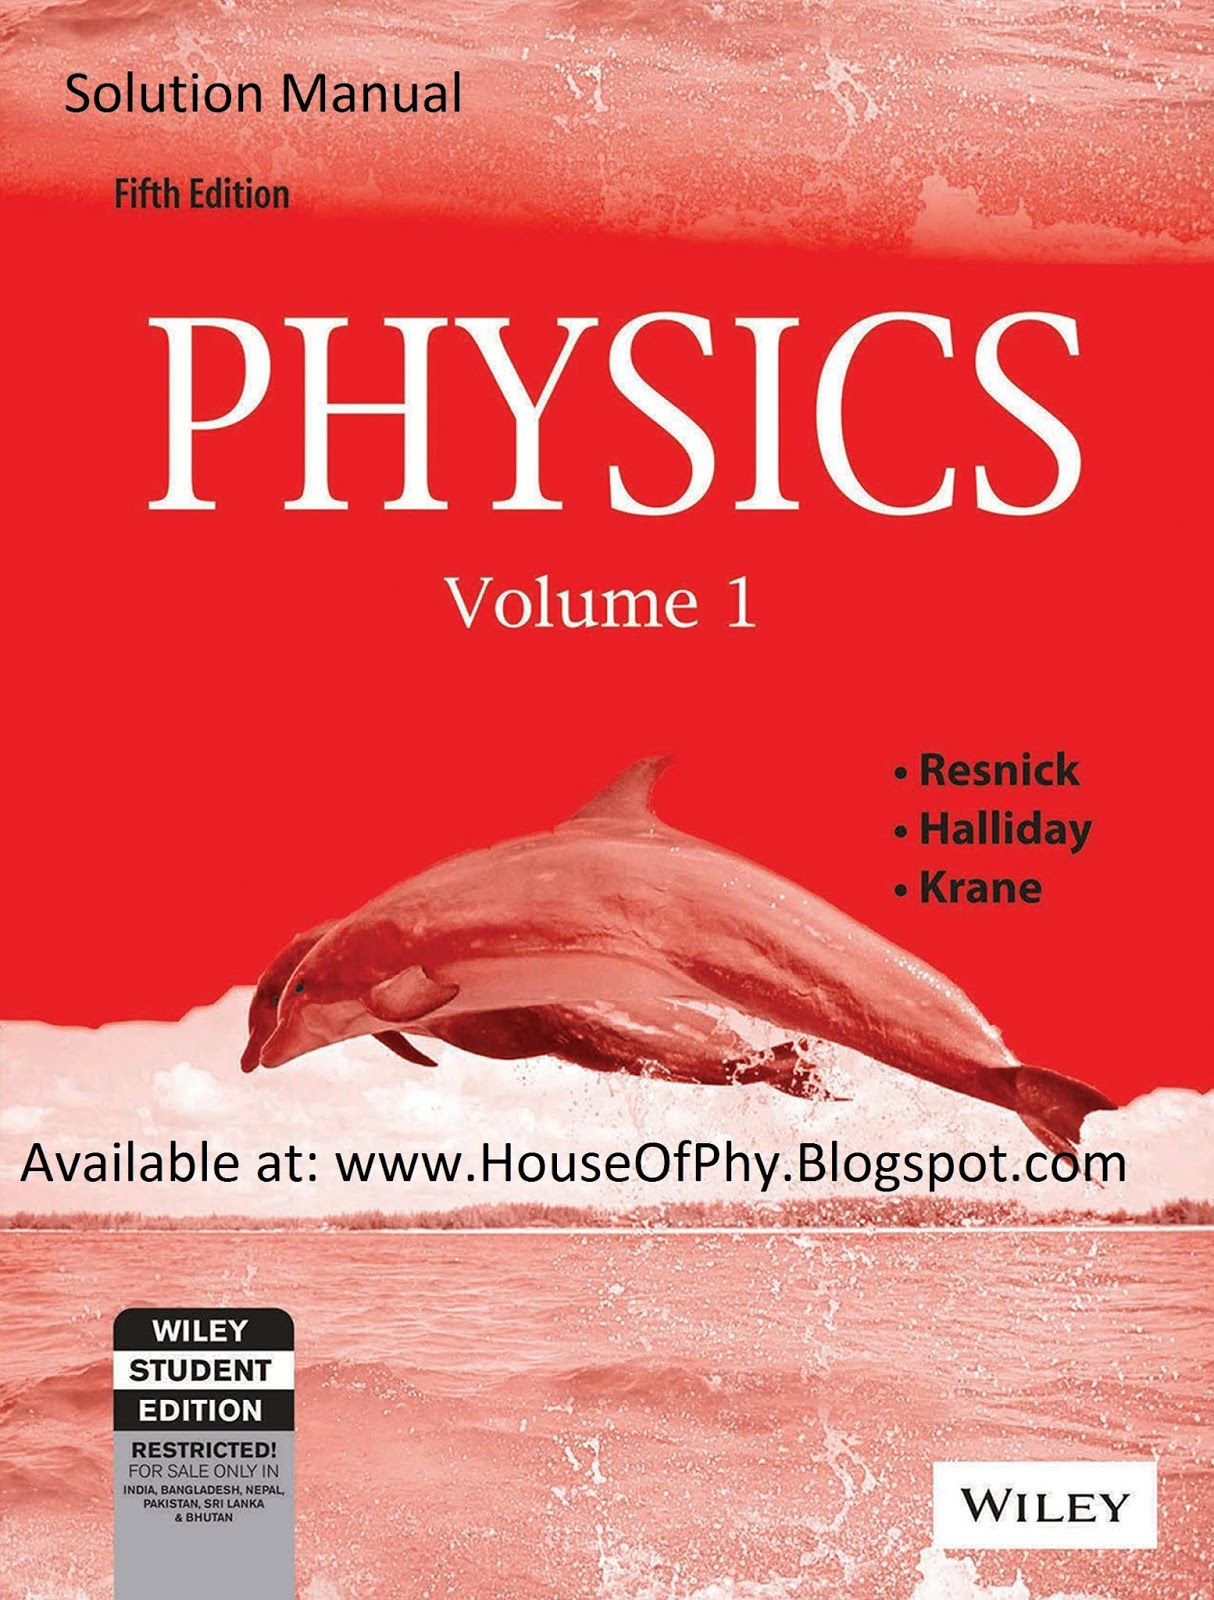 Solution Manual of Physics by Halliday, Resnick, Krane Volume 1